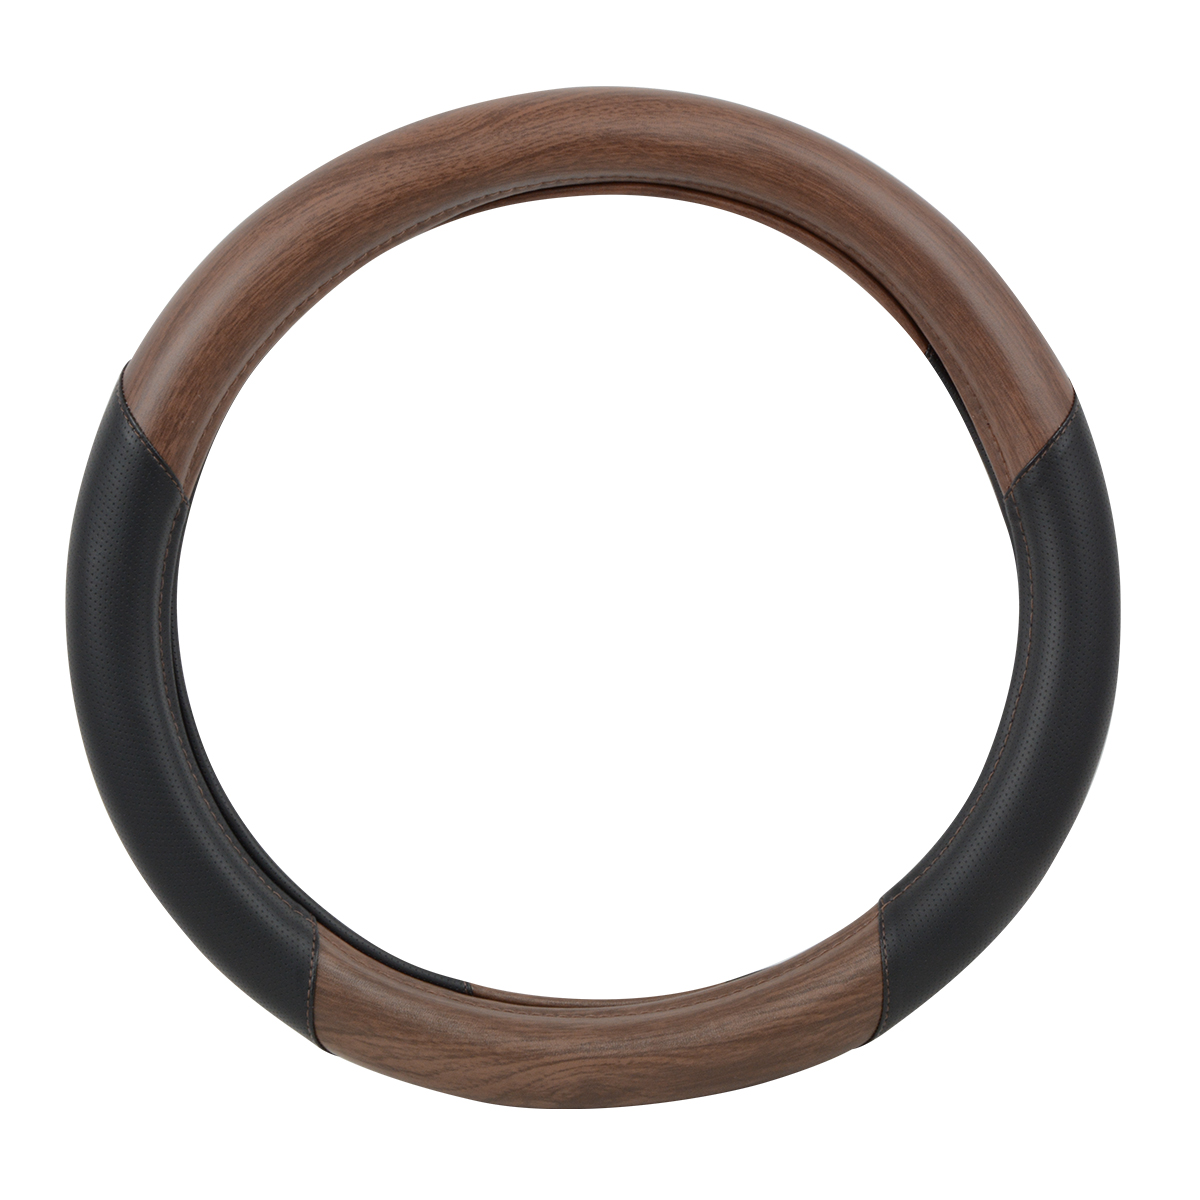 "54060 Heavy Duty 18"" Steering Wheel Cover in Deluxe Matte Natural Wood"